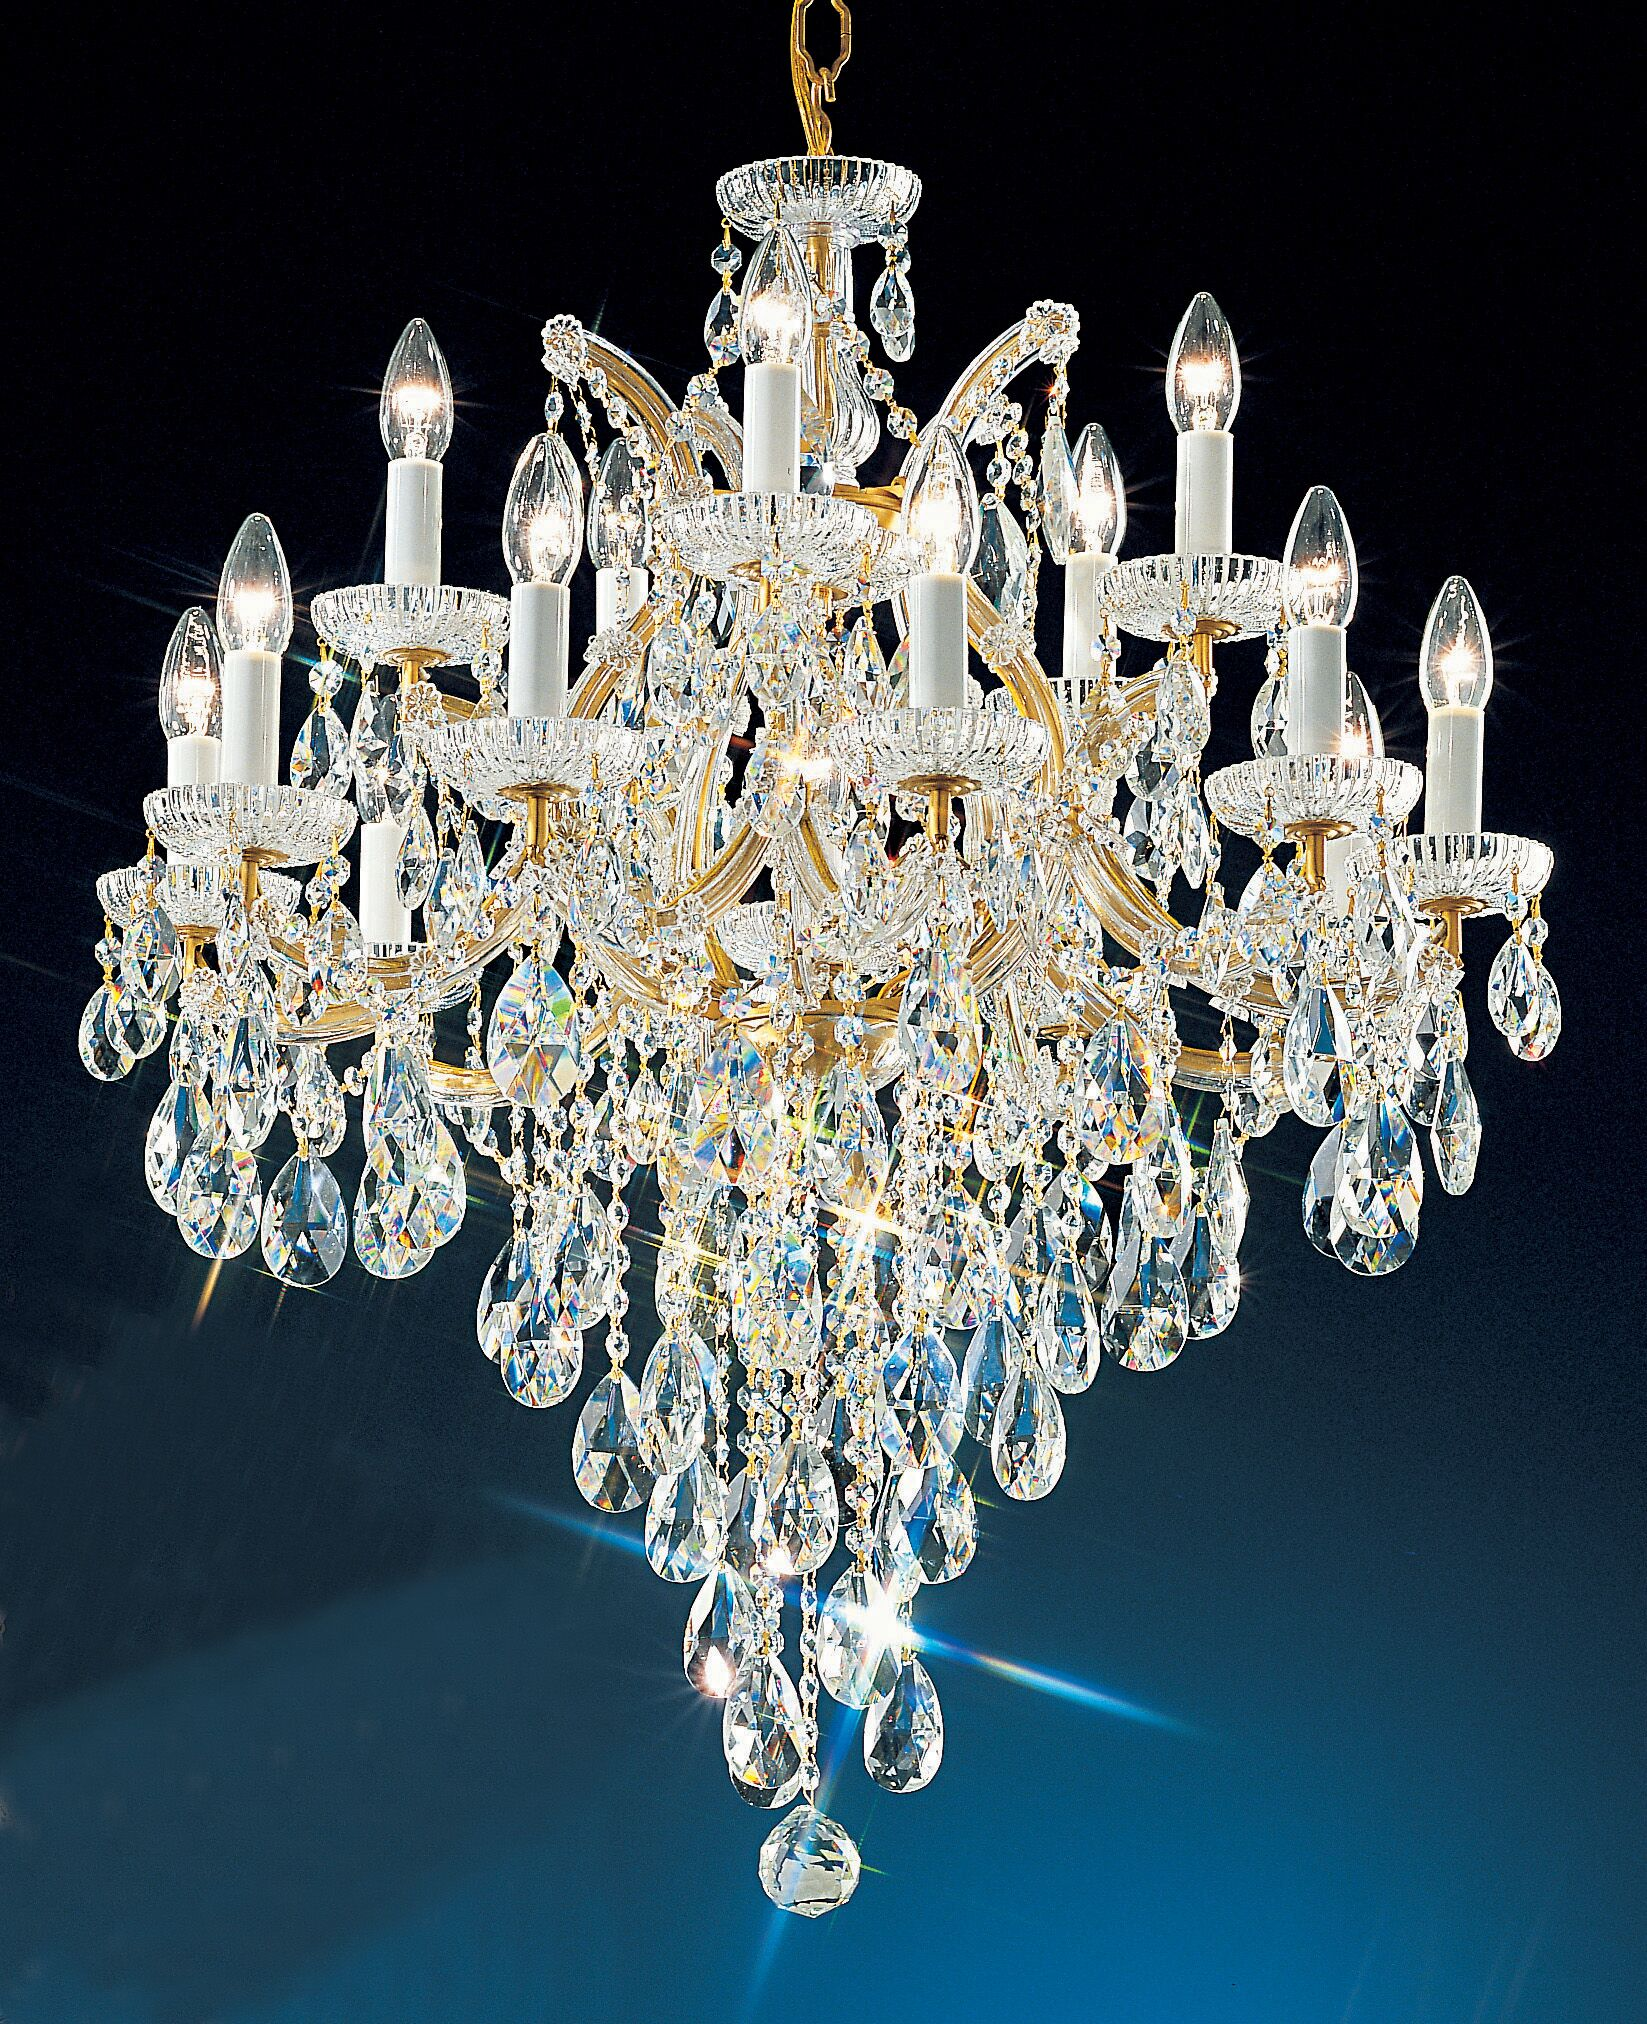 Maria Thersea 16-Light Candle Style Chandelier Finish: Chrome, Crystal Type: Swarovski Elements